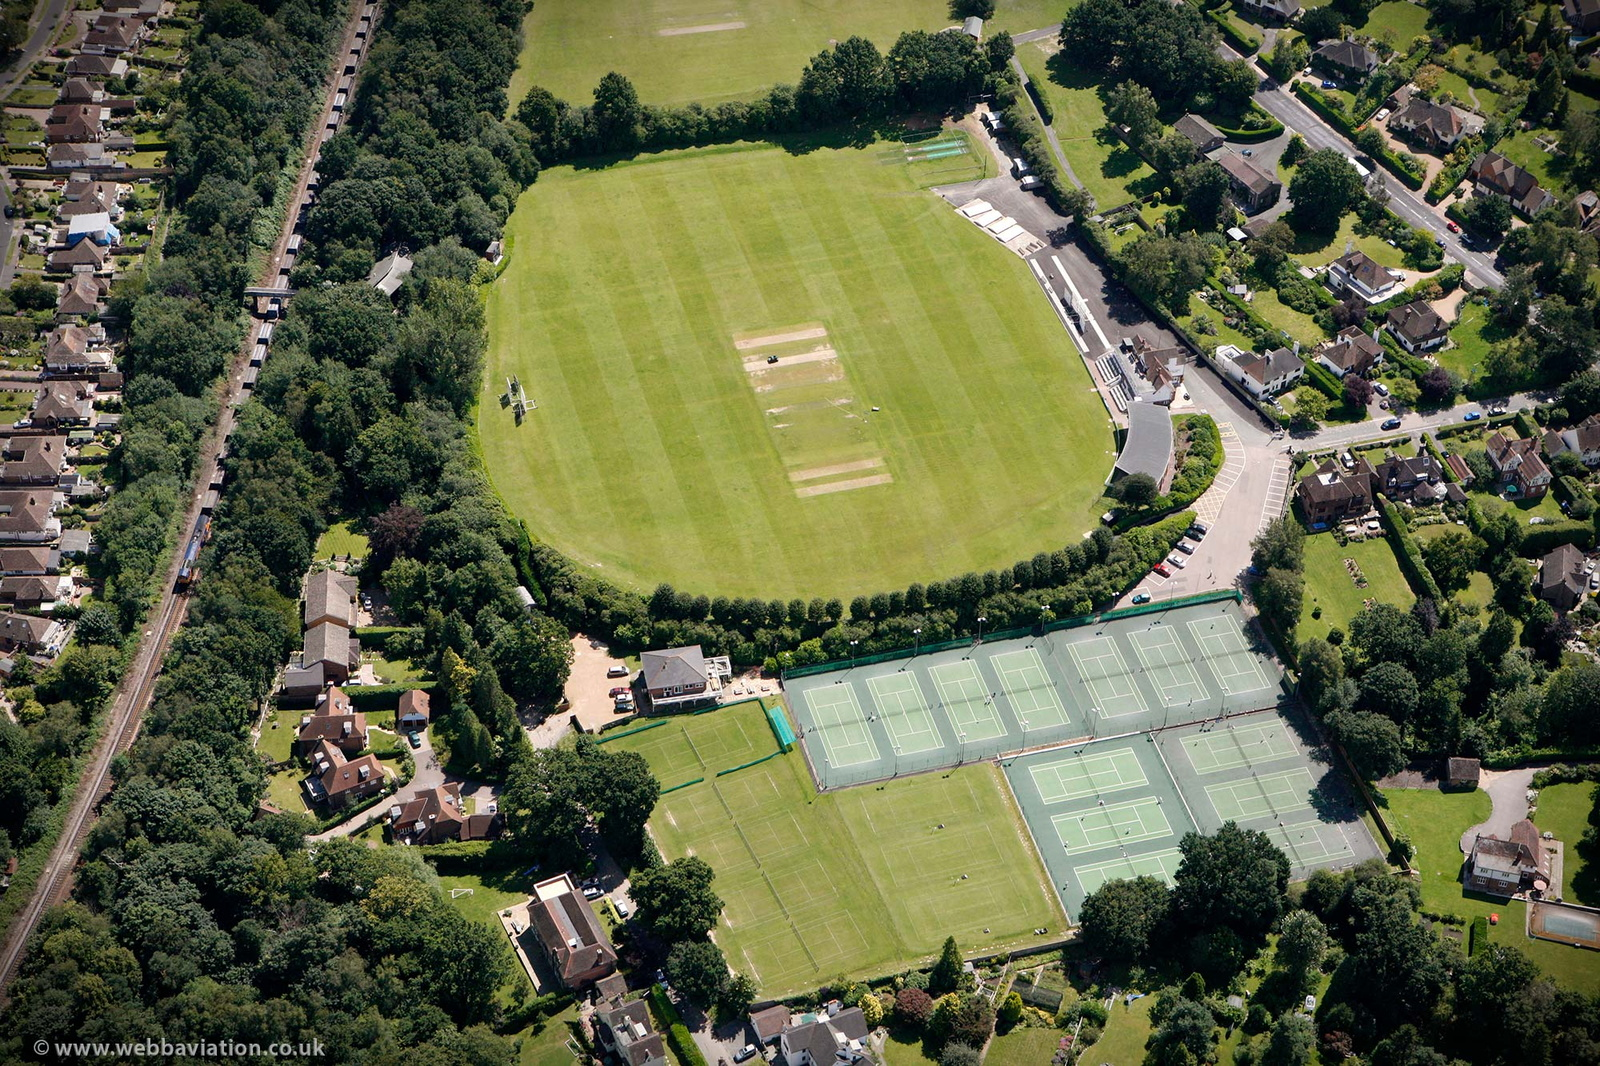 The Nevill cricket  ground Tunbridge Wells  from the air